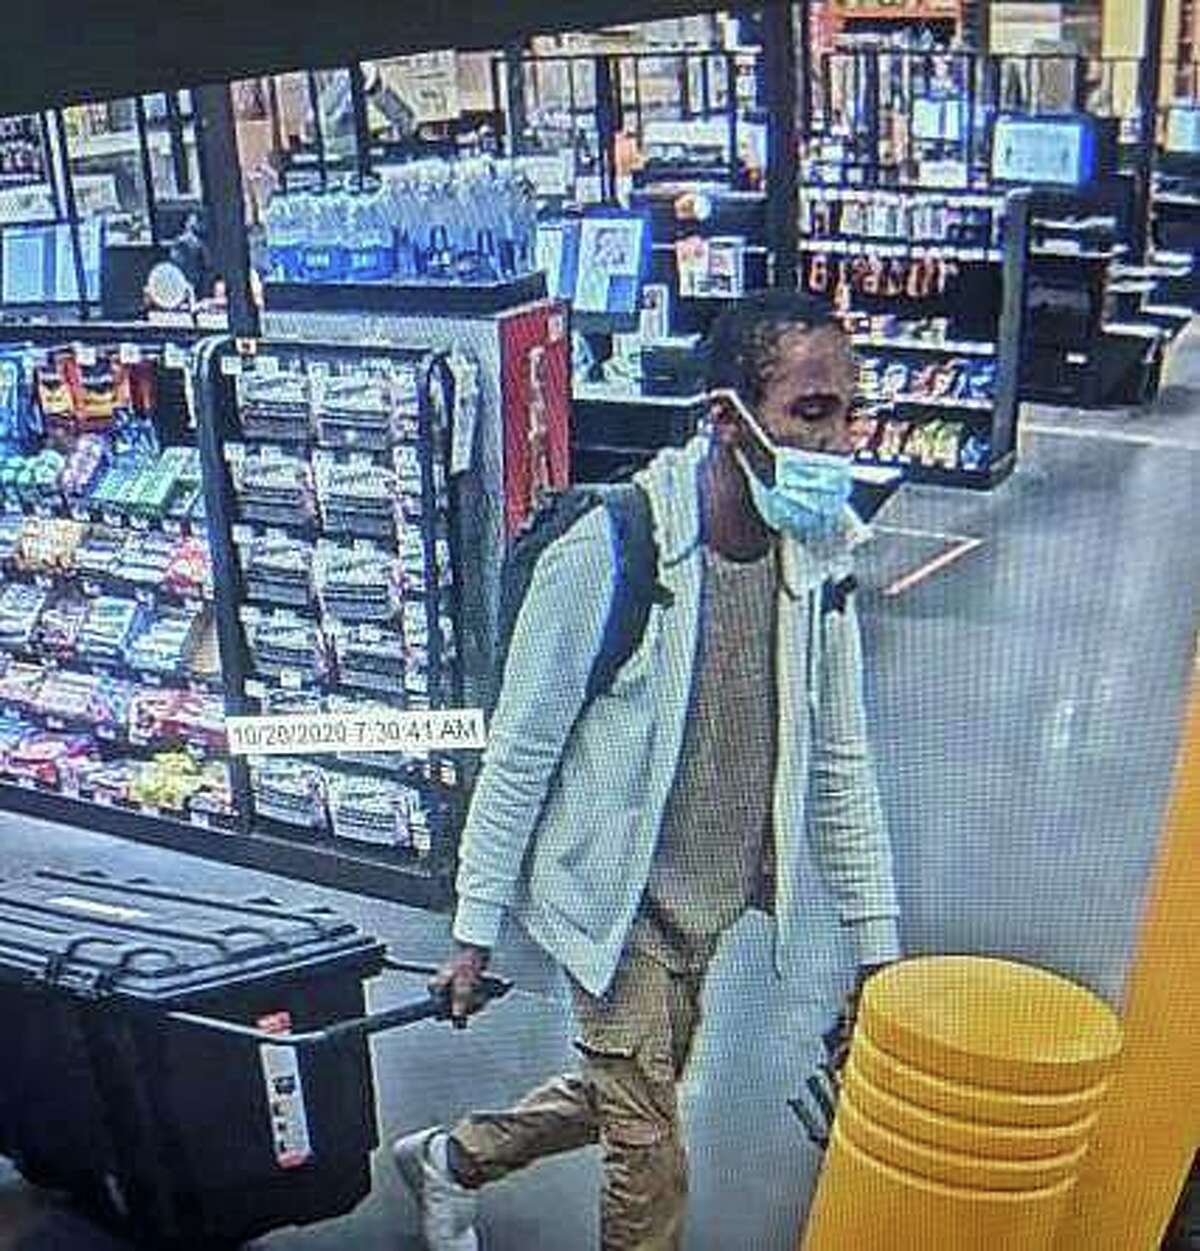 Police are asking the public's help to identify a suspect in a recent larceny at the Home Depot. Police say the theft happened on Tuesday, Oct. 20, 2020.